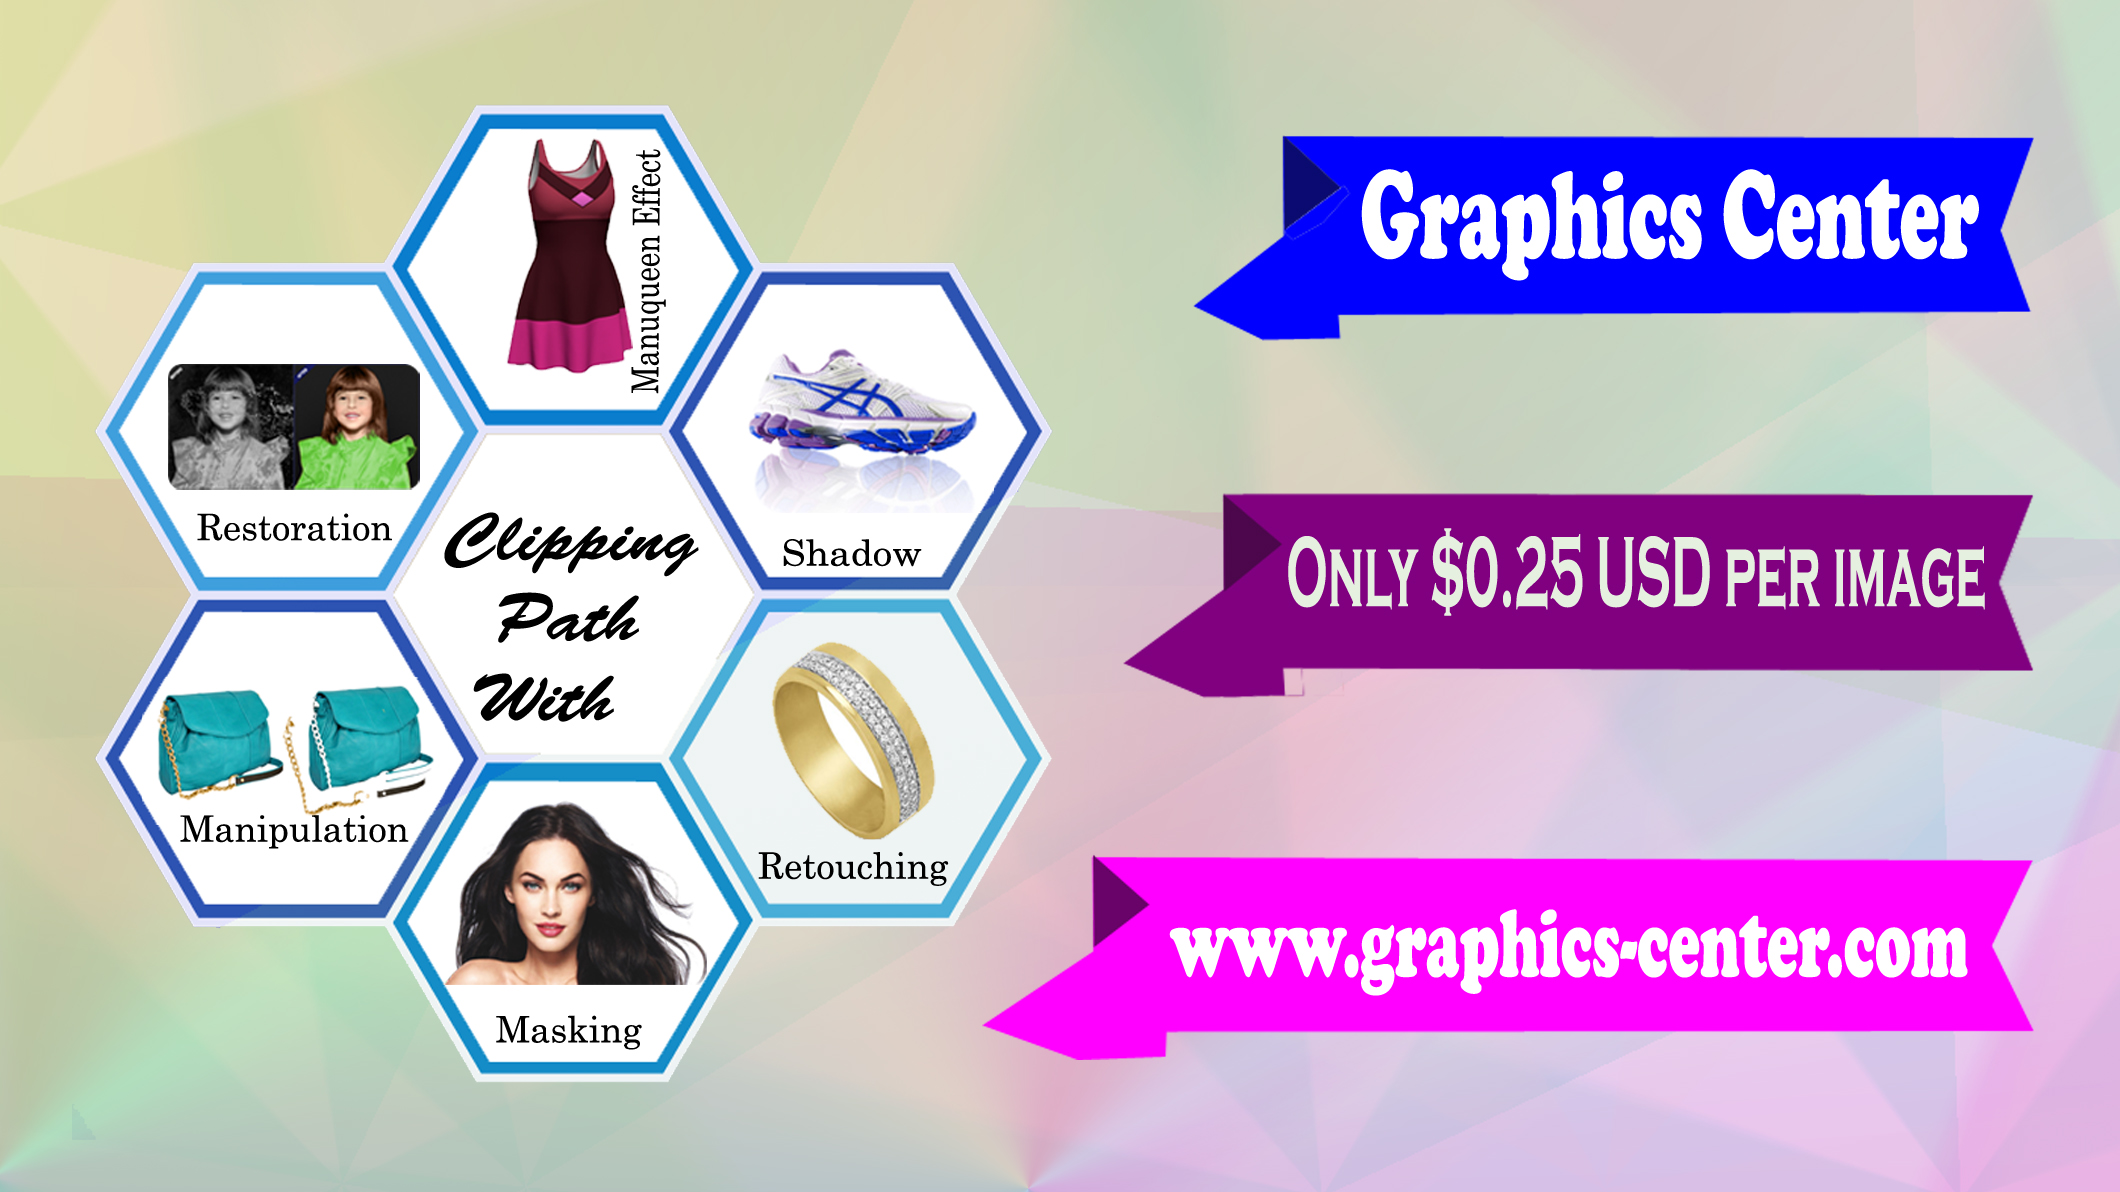 Professional Photo Editing Service Provider in Asia, Clipping Path@25